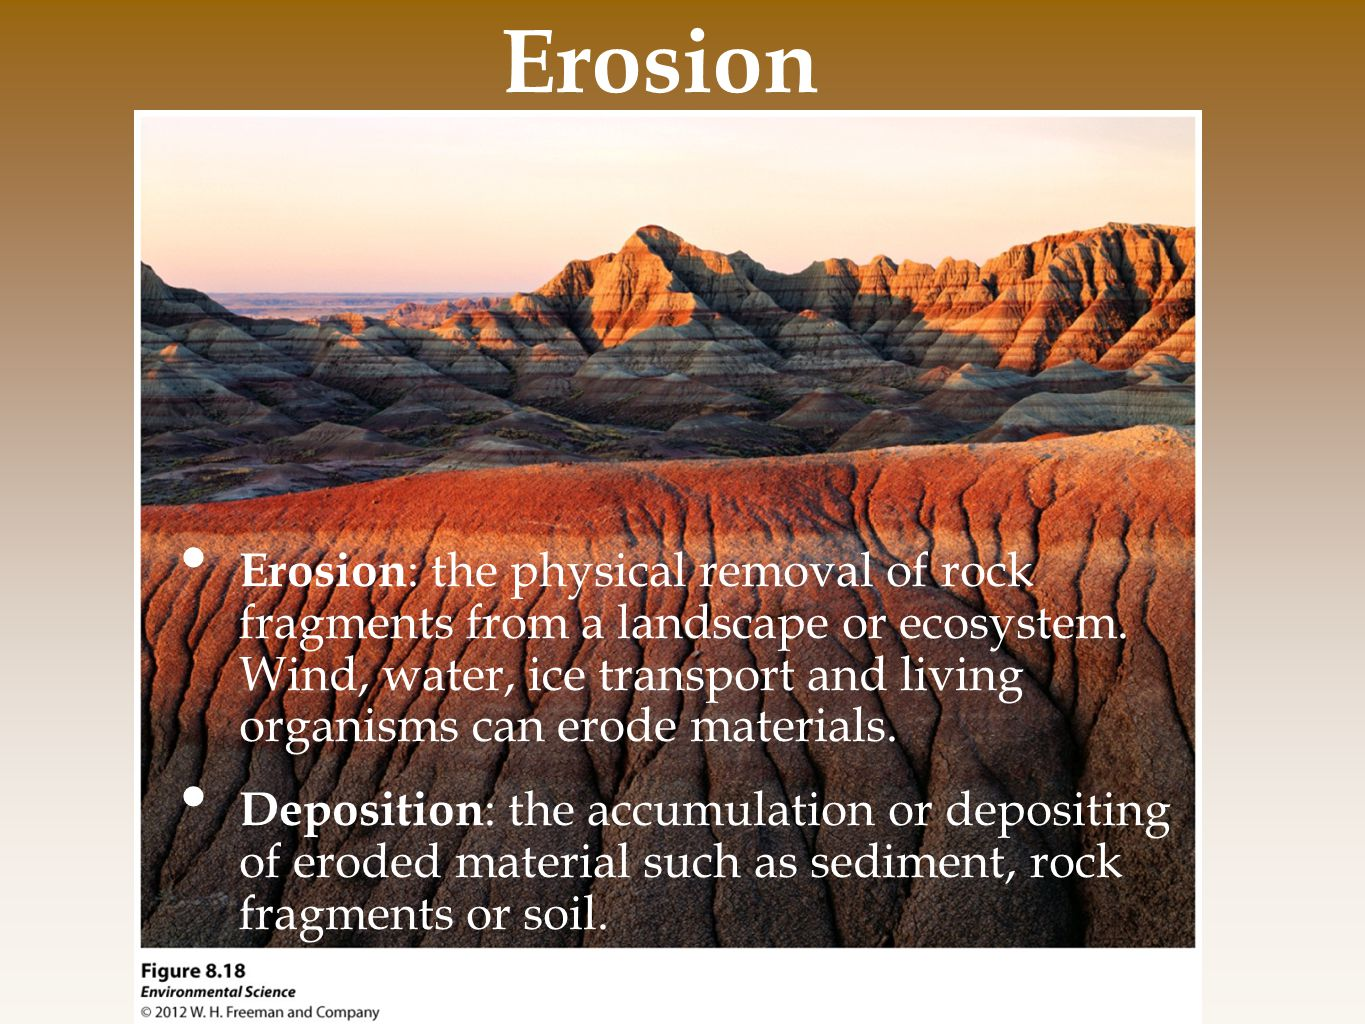 Erosion Erosion : the physical removal of rock fragments from a landscape or ecosystem.